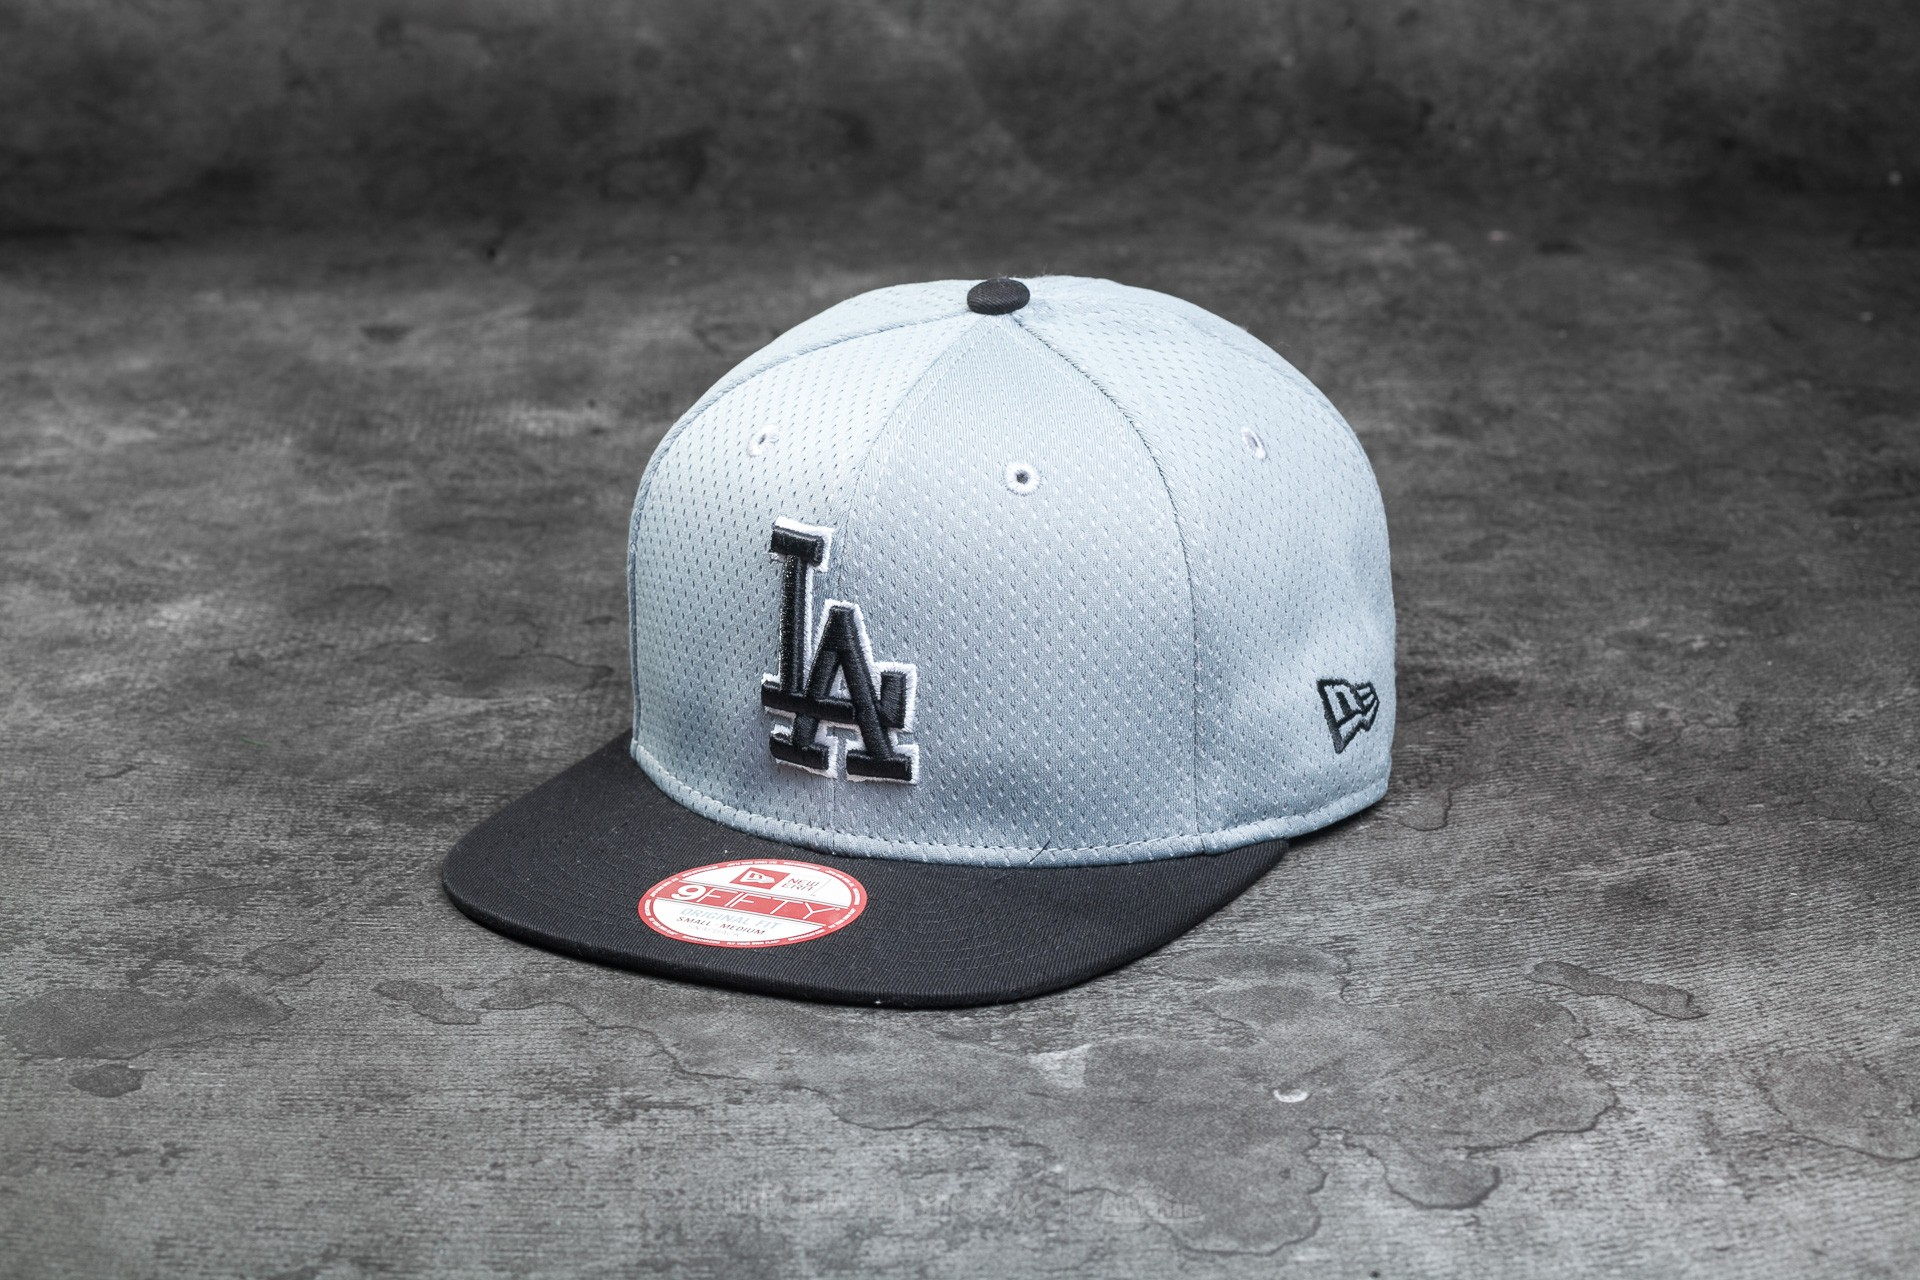 b4bdfcae5ca New Era 9Fifty Major League Baseball Outline Mesh Los Angeles Dodgers Cap  Gray  Black